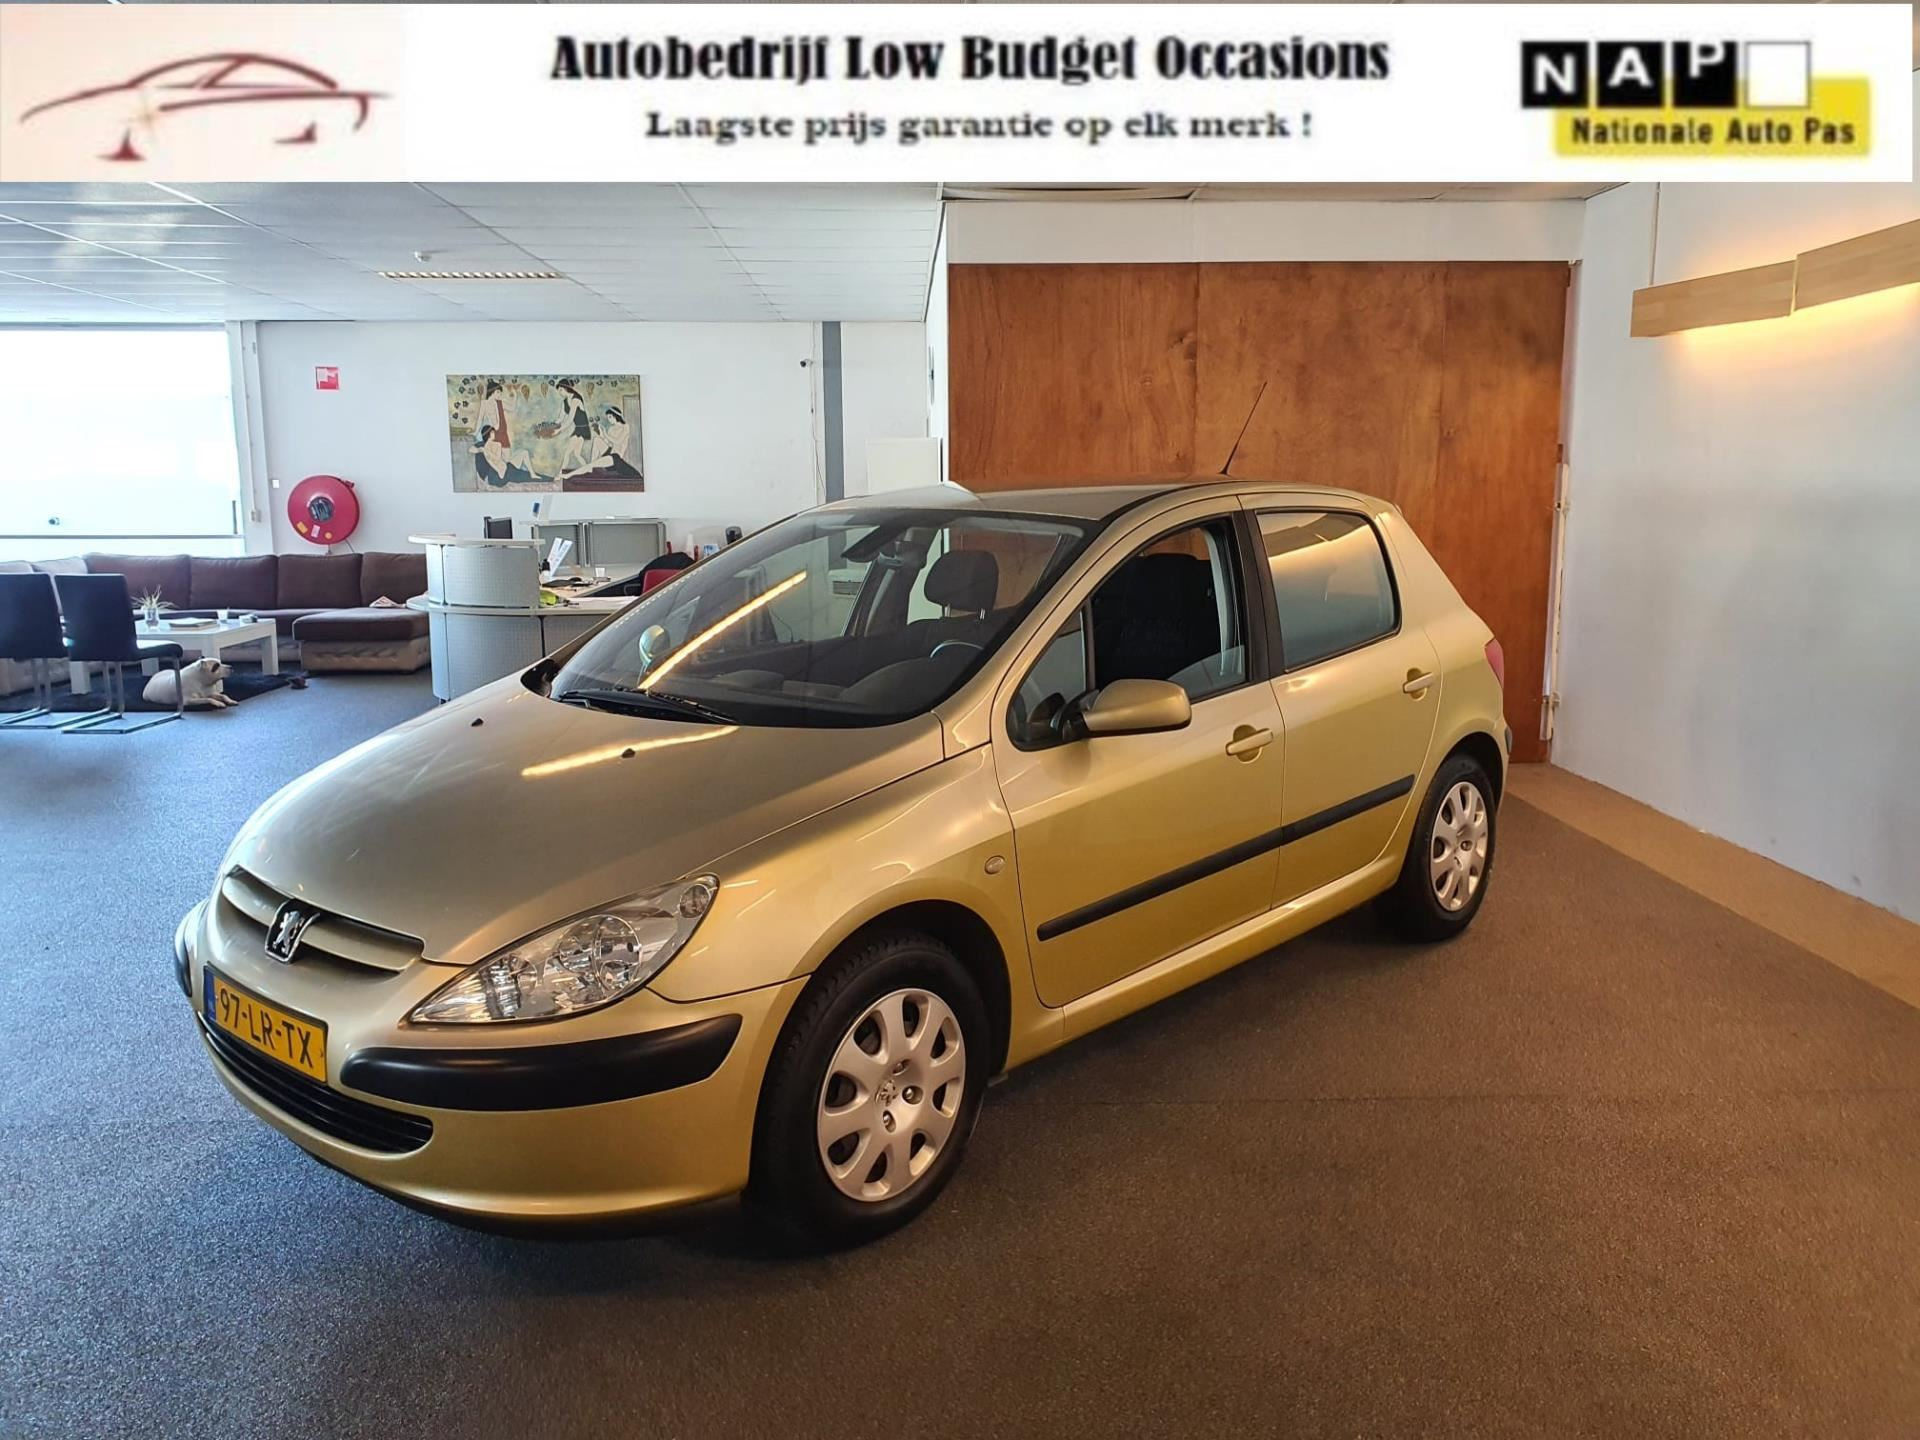 Peugeot 307 occasion - Low Budget Occasions